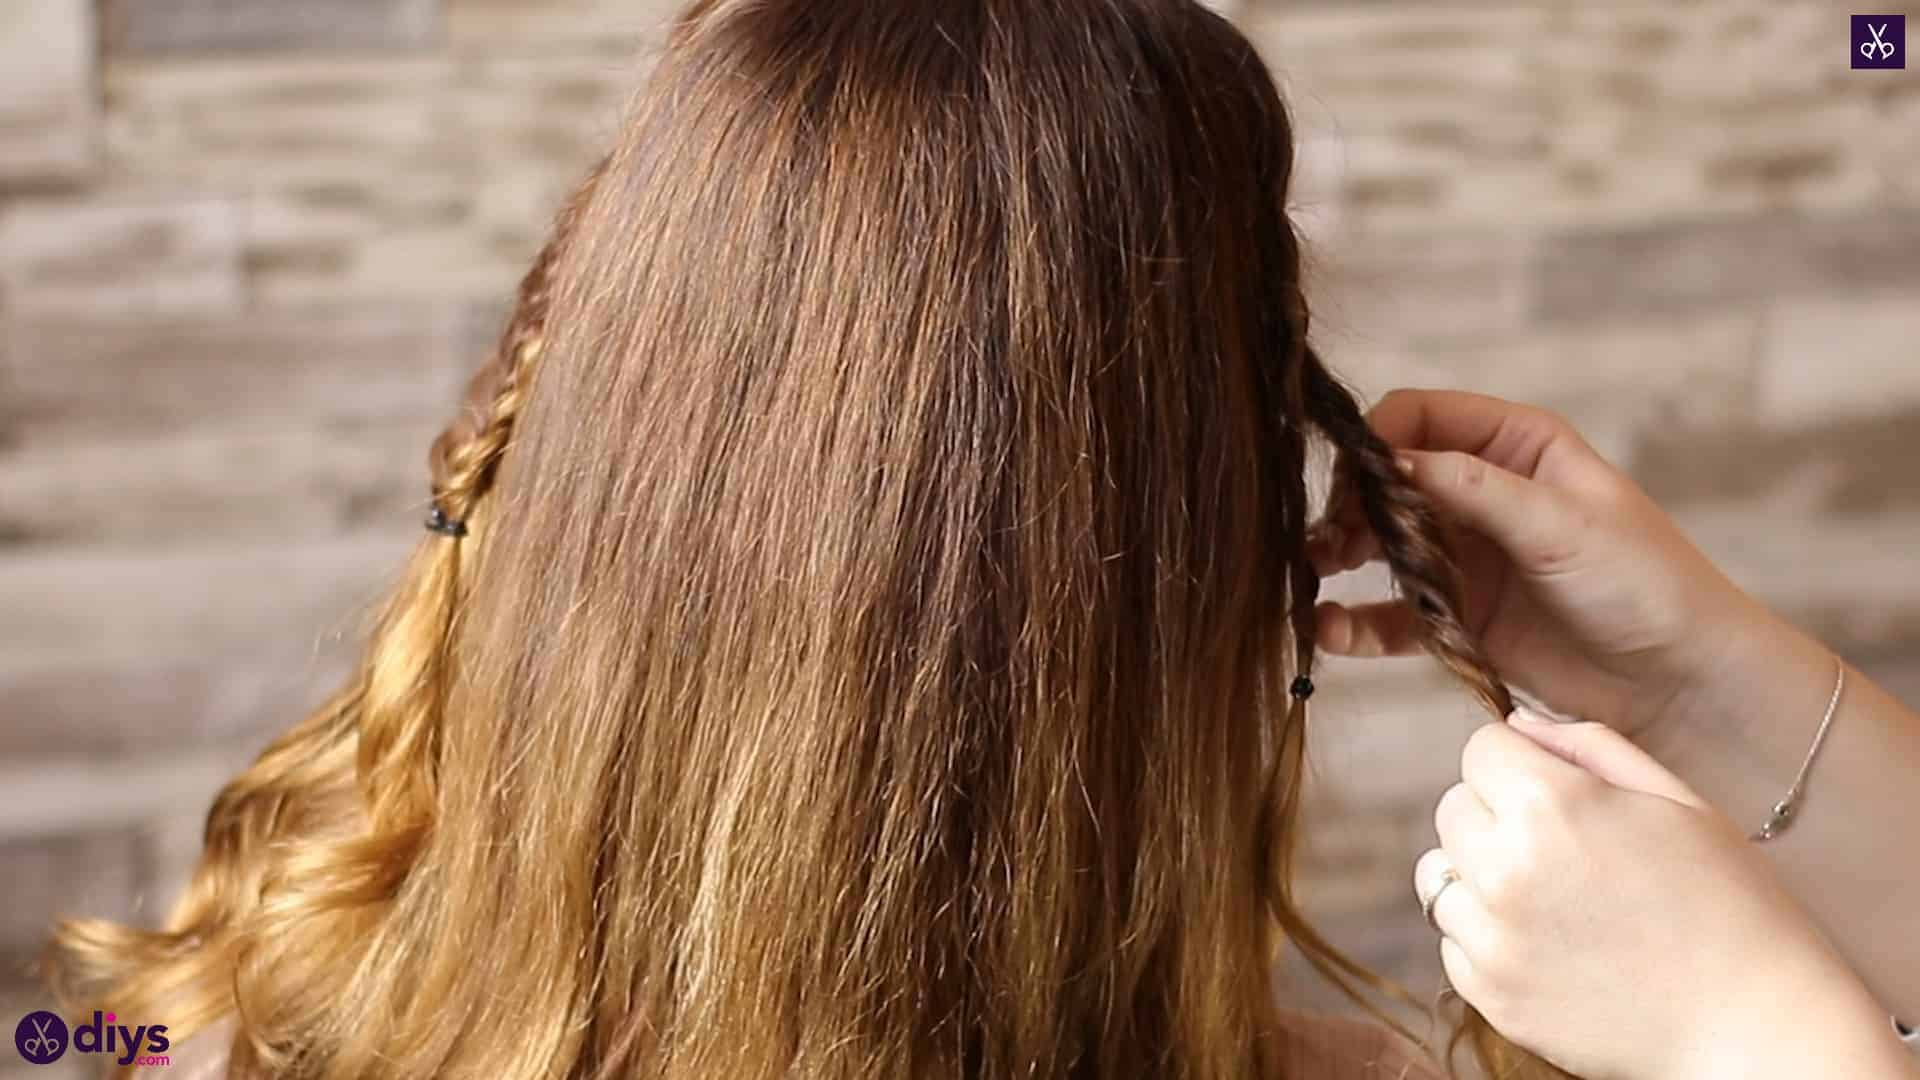 Half up, half down hairstyle for spring34